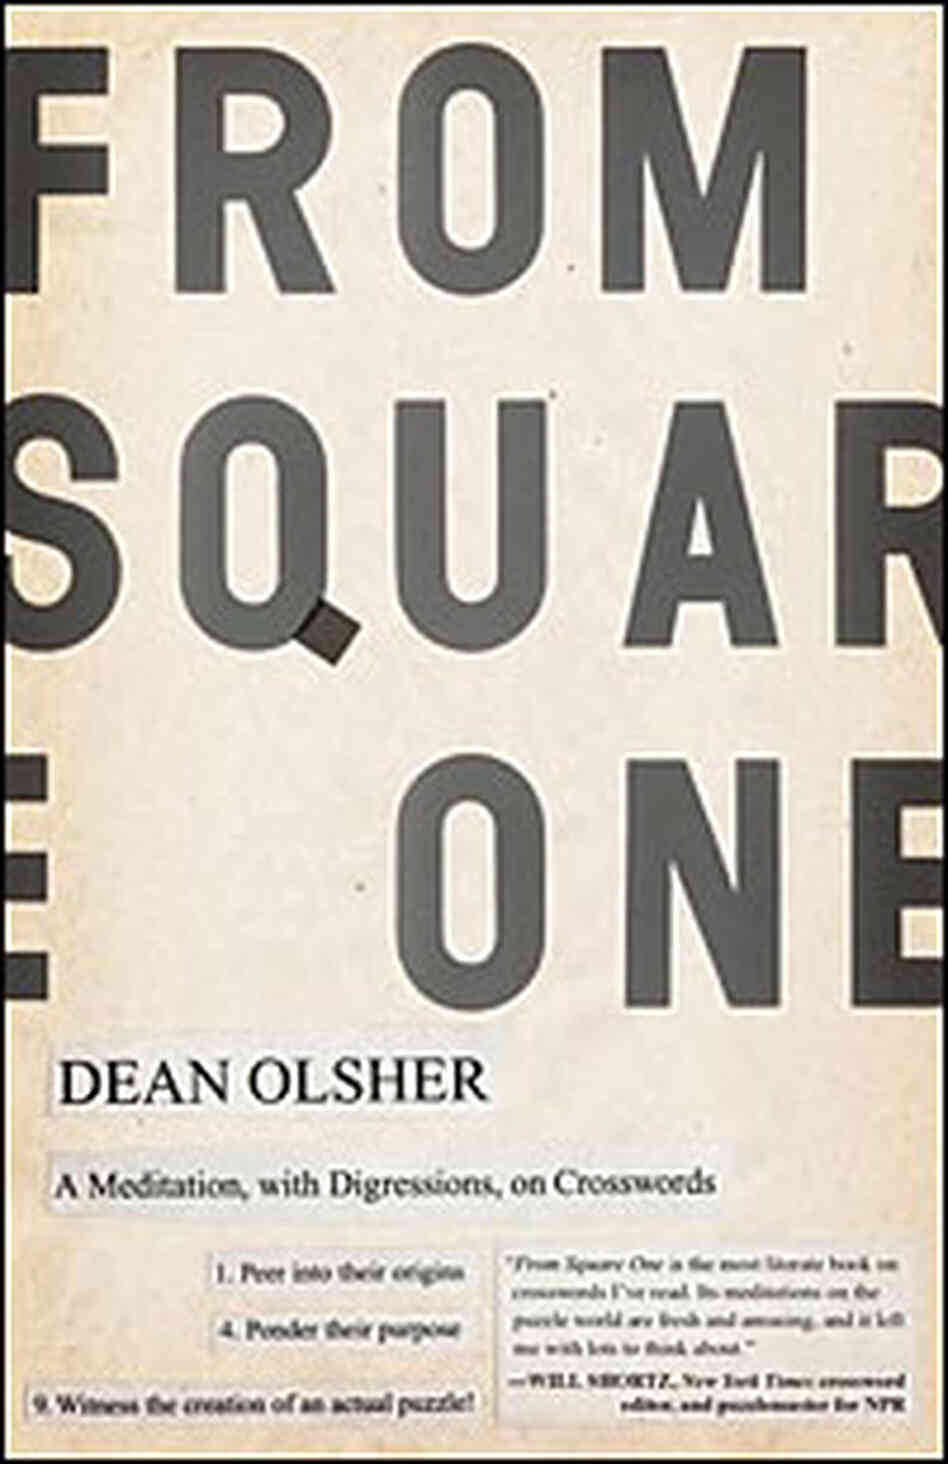 'From Square One' cover